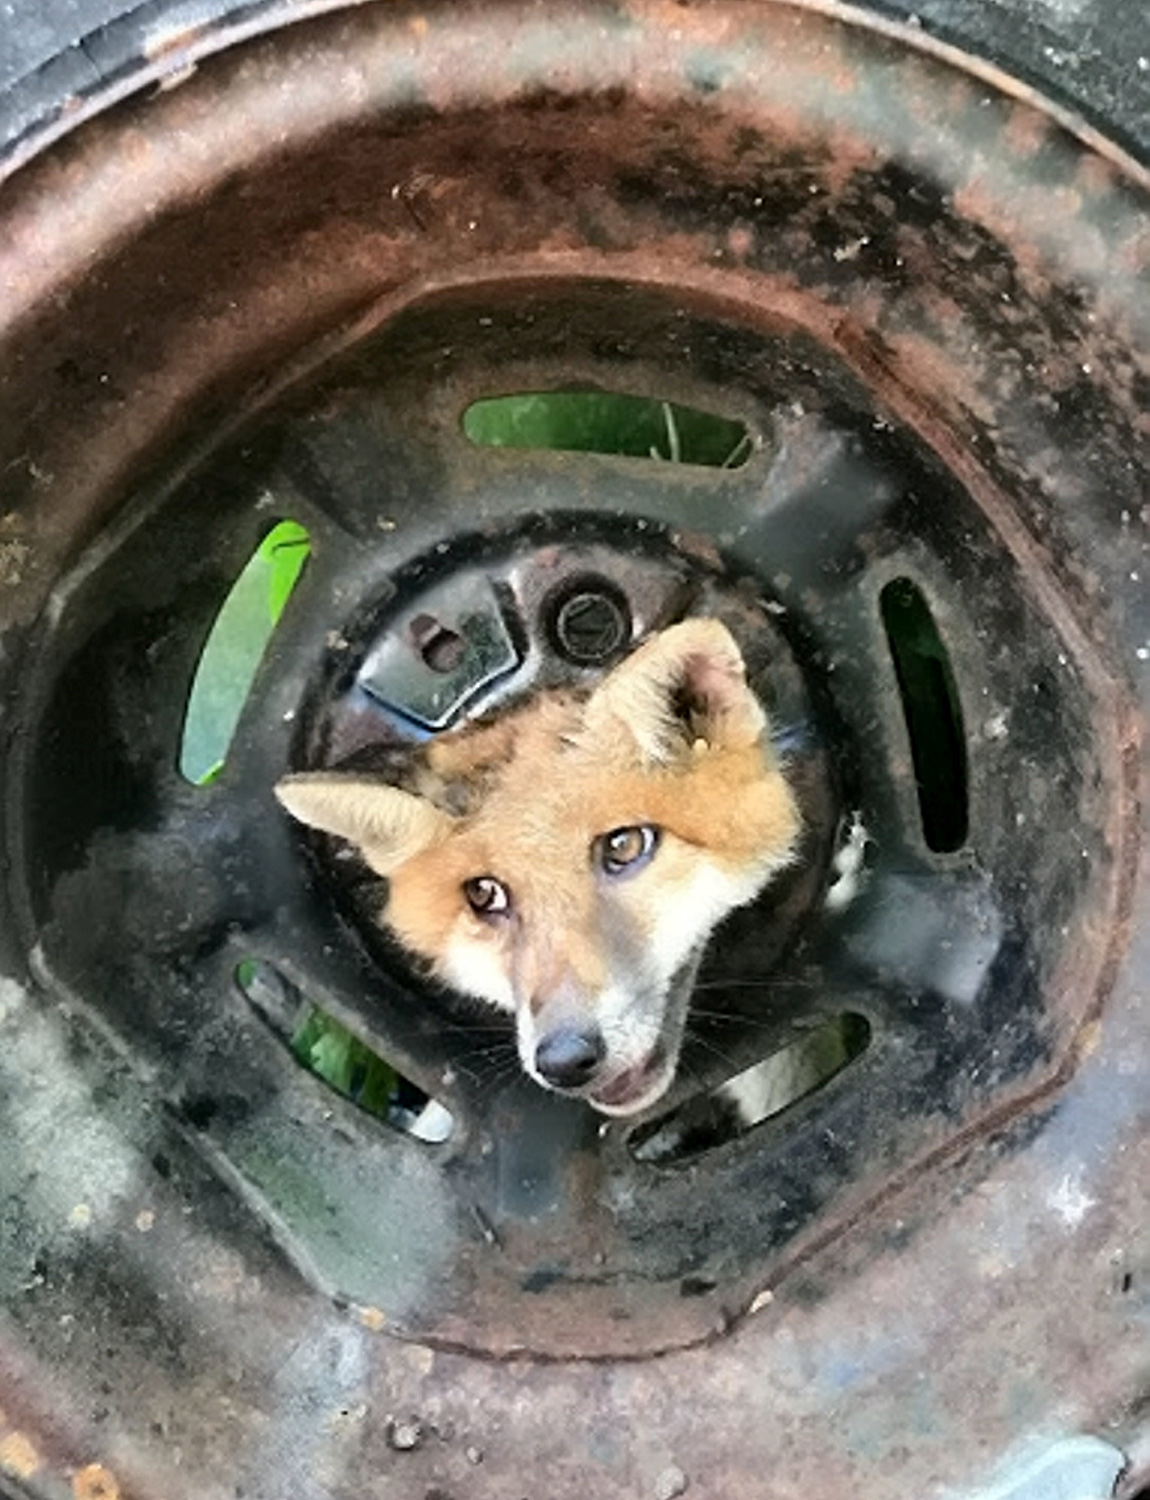 This less than fantastic Mr Fox had to be freed by firefighters after its head got stuck in an old car wheel in Croydon, London